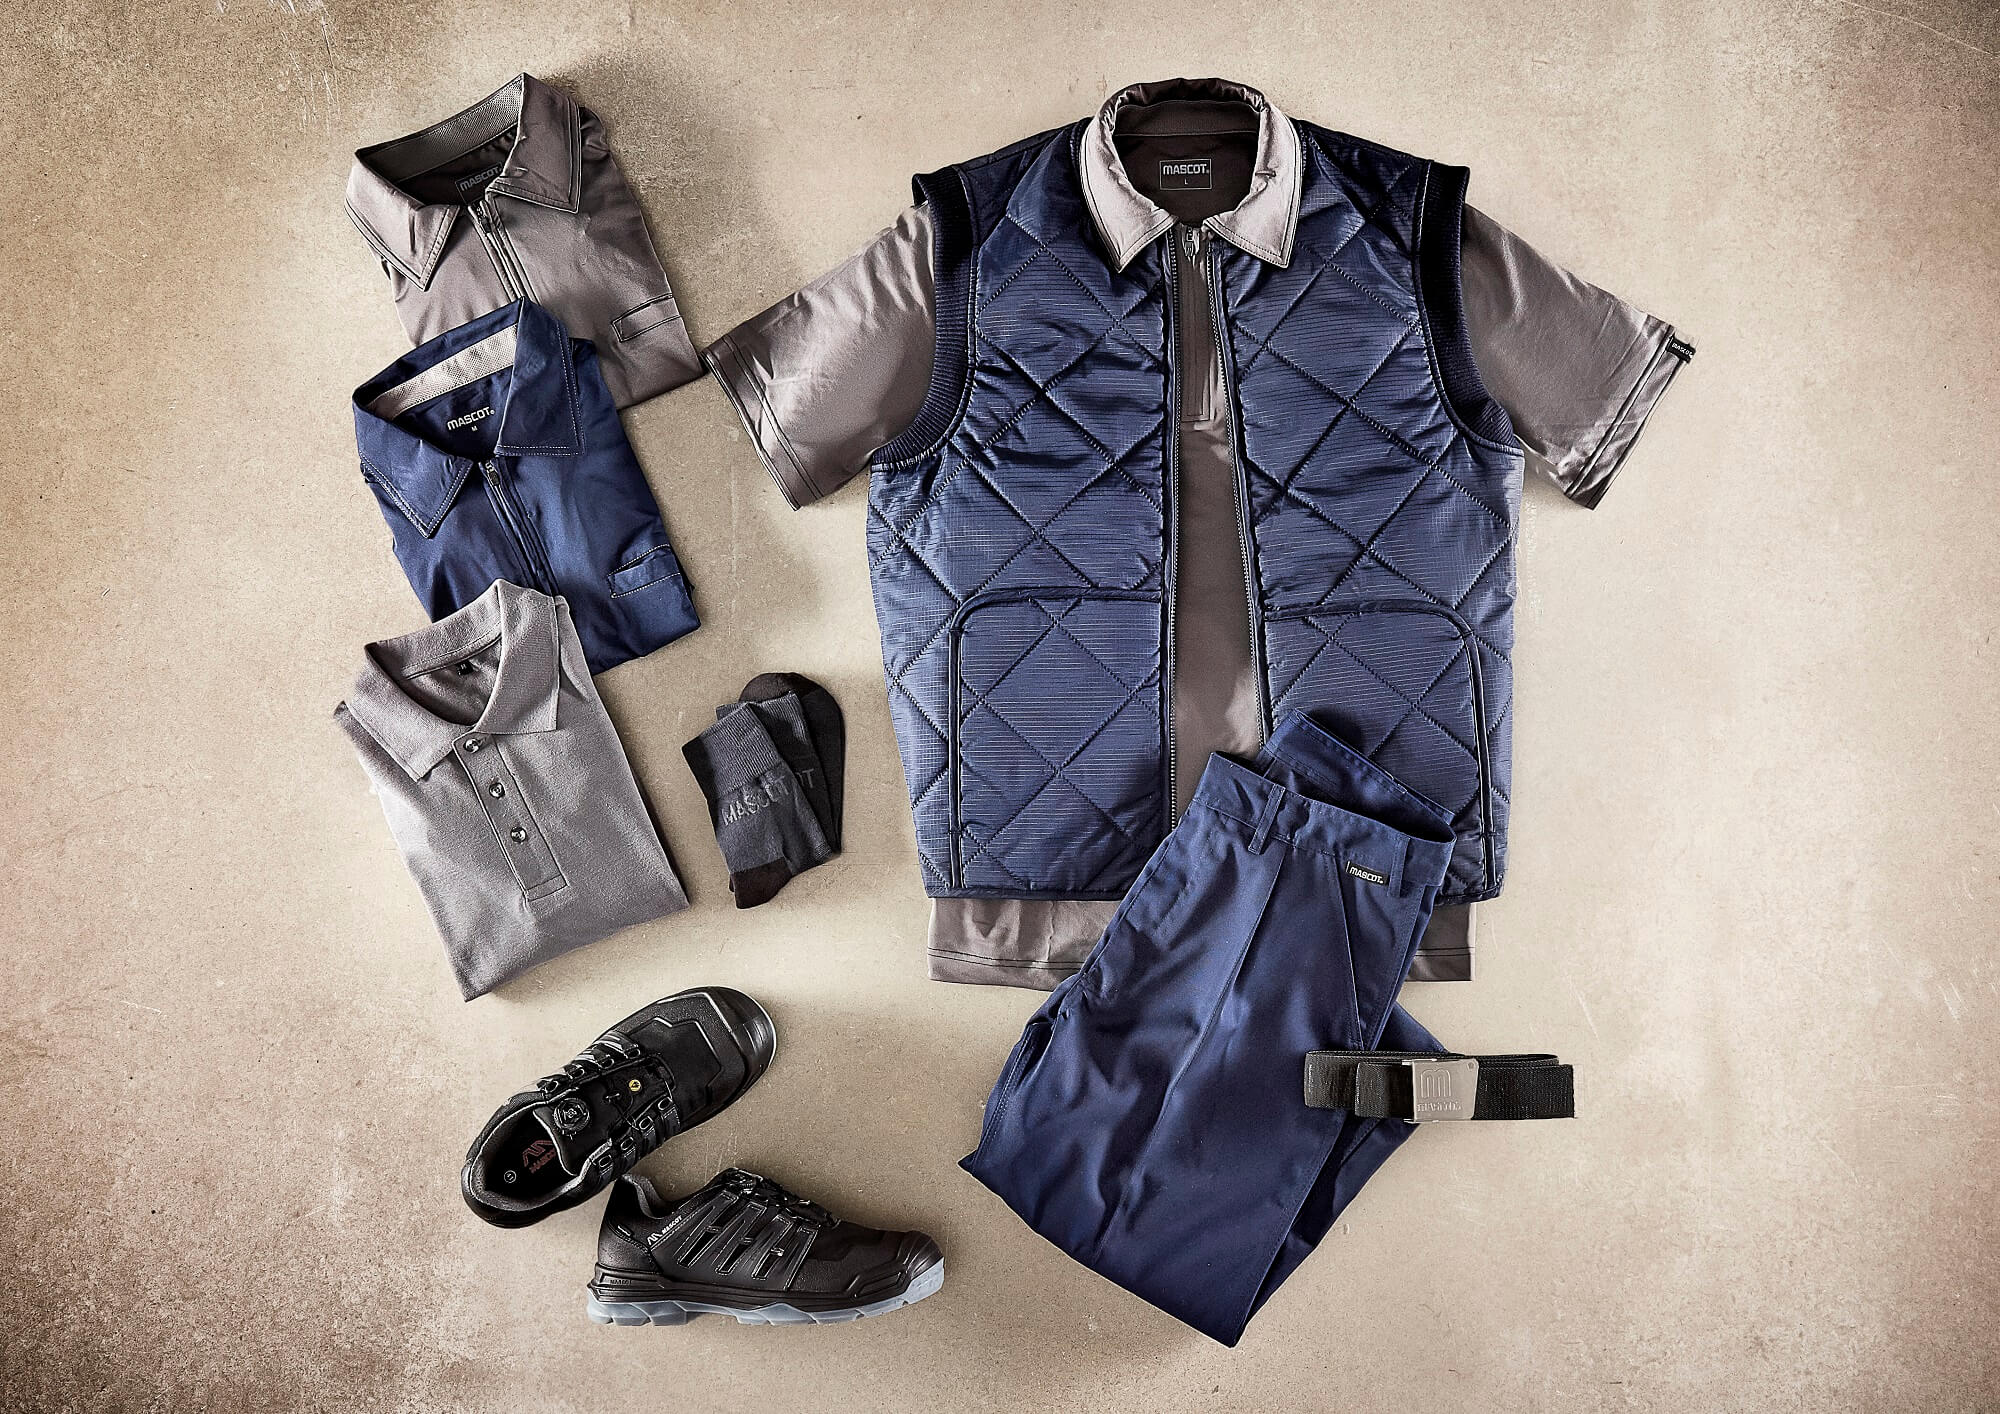 Navy - Thermal Gilet, Polo shirts & Pants with thigh pockets - Collage